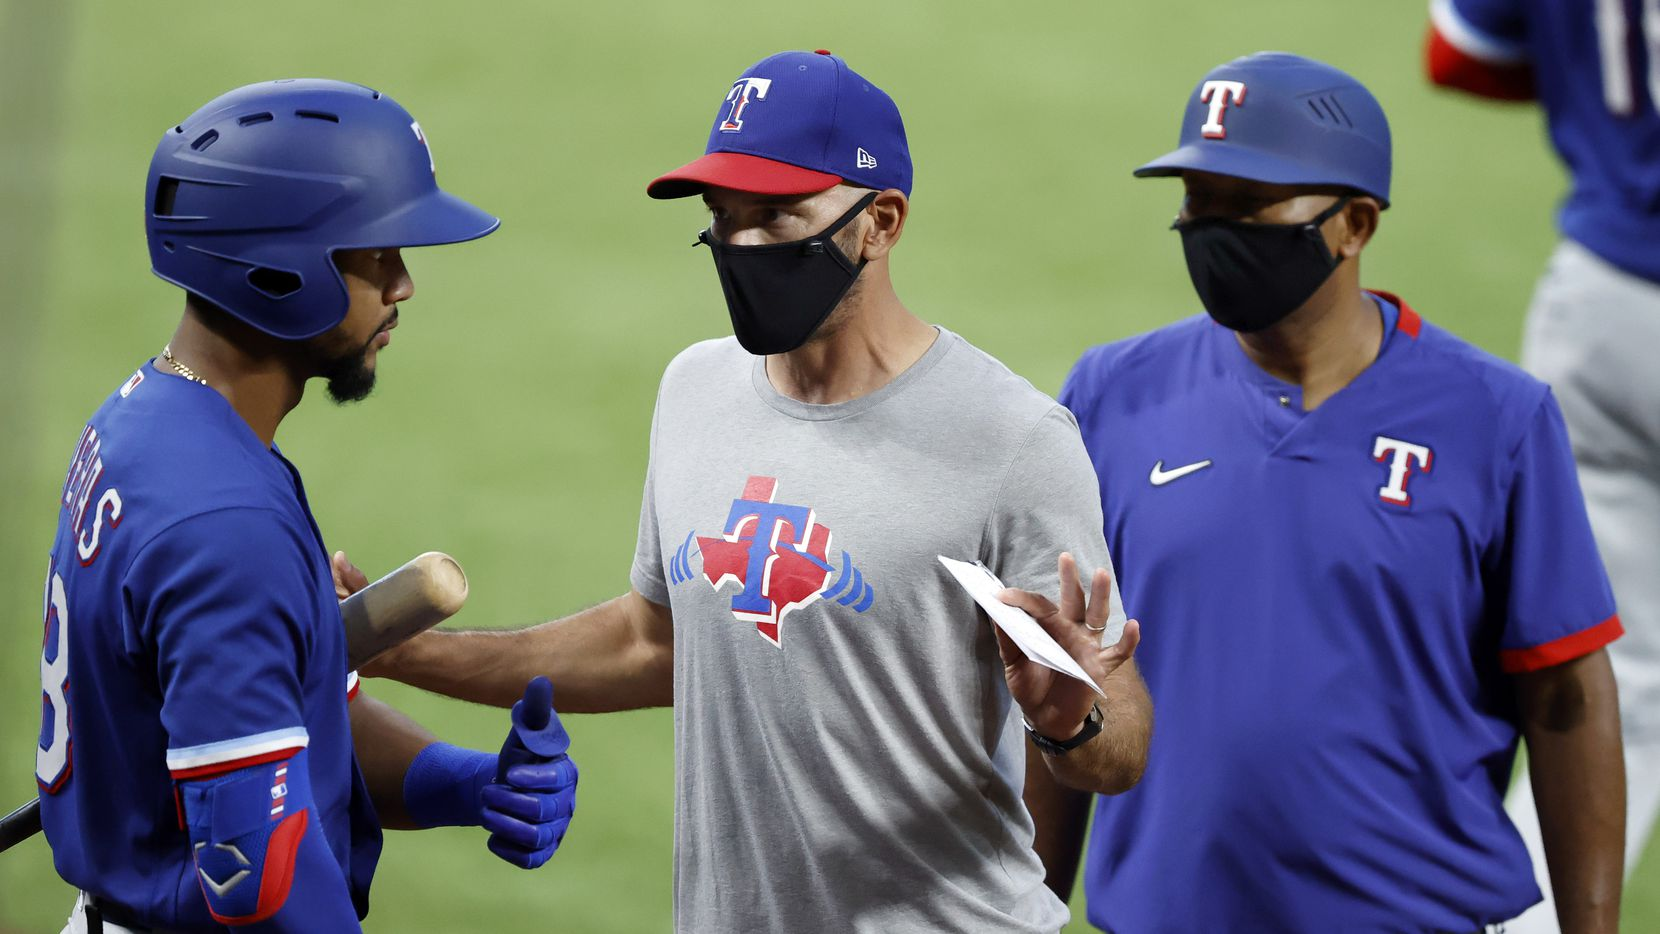 Texas Rangers manager Chris Woodward (middle) wears a mask as he visits with outfielder Leody Taveras during a simulated Summer Camp game inside Globe Life Field in Arlington, Texas, Thursday, July 9, 2020.